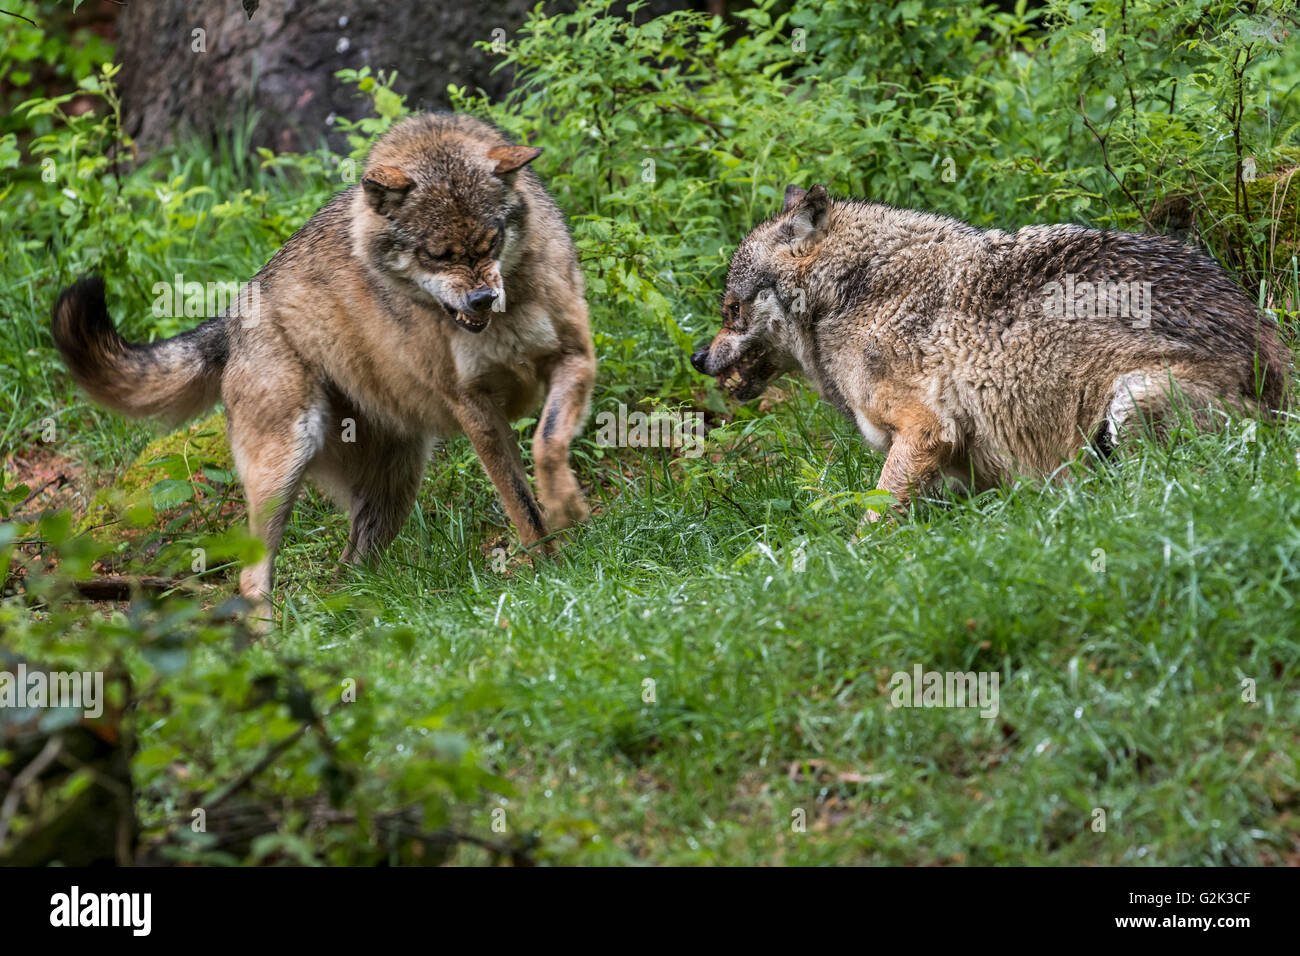 Two aggressive gray wolves / grey wolves (Canis lupus) fighting while snarling with bared canines for dominance - Stock Image